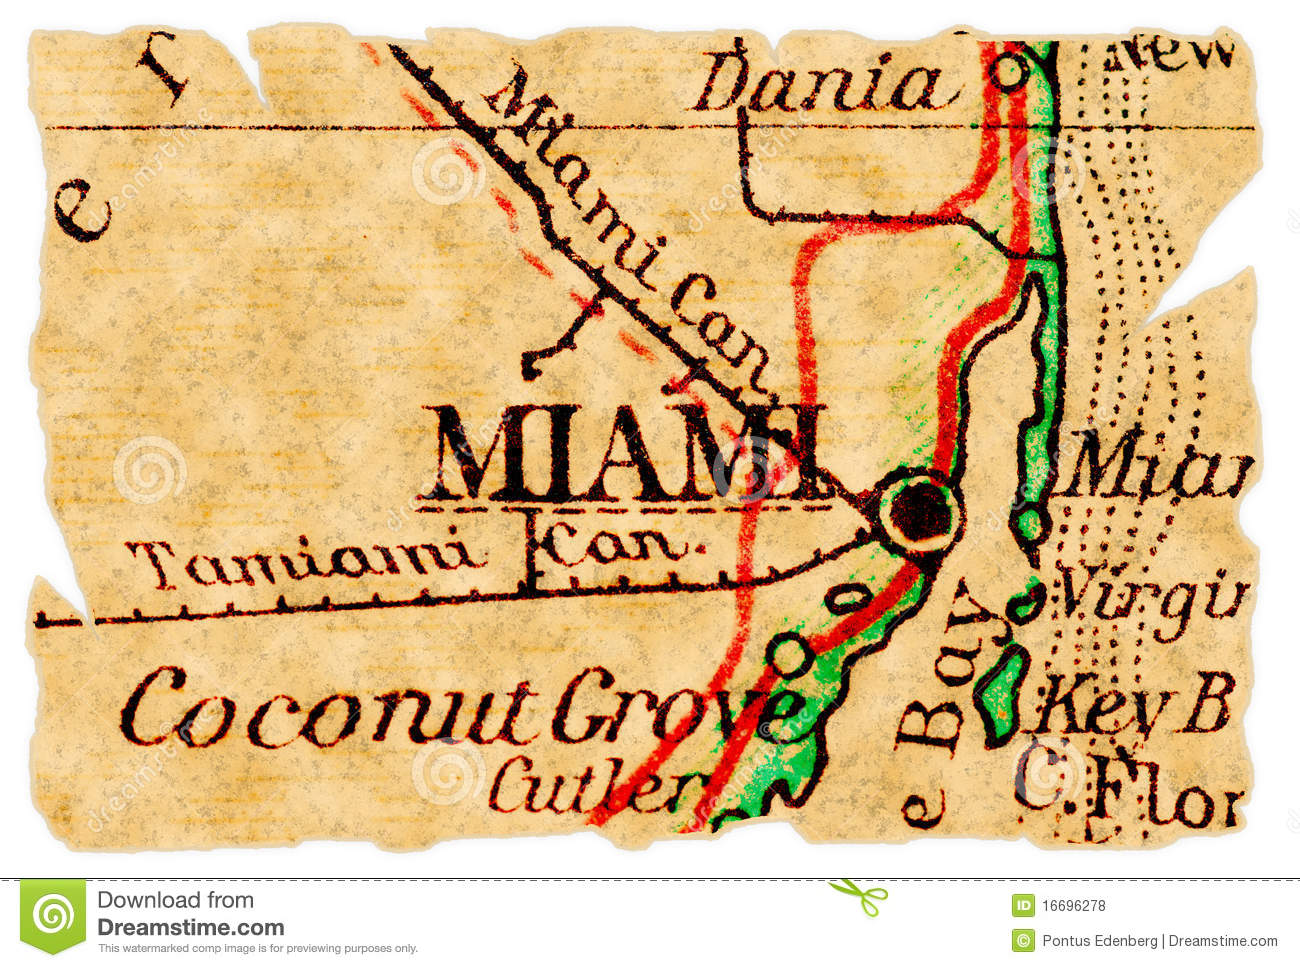 Coconut Grove Florida Map.Florida Map Stock Images Download 415 Royalty Free Photos